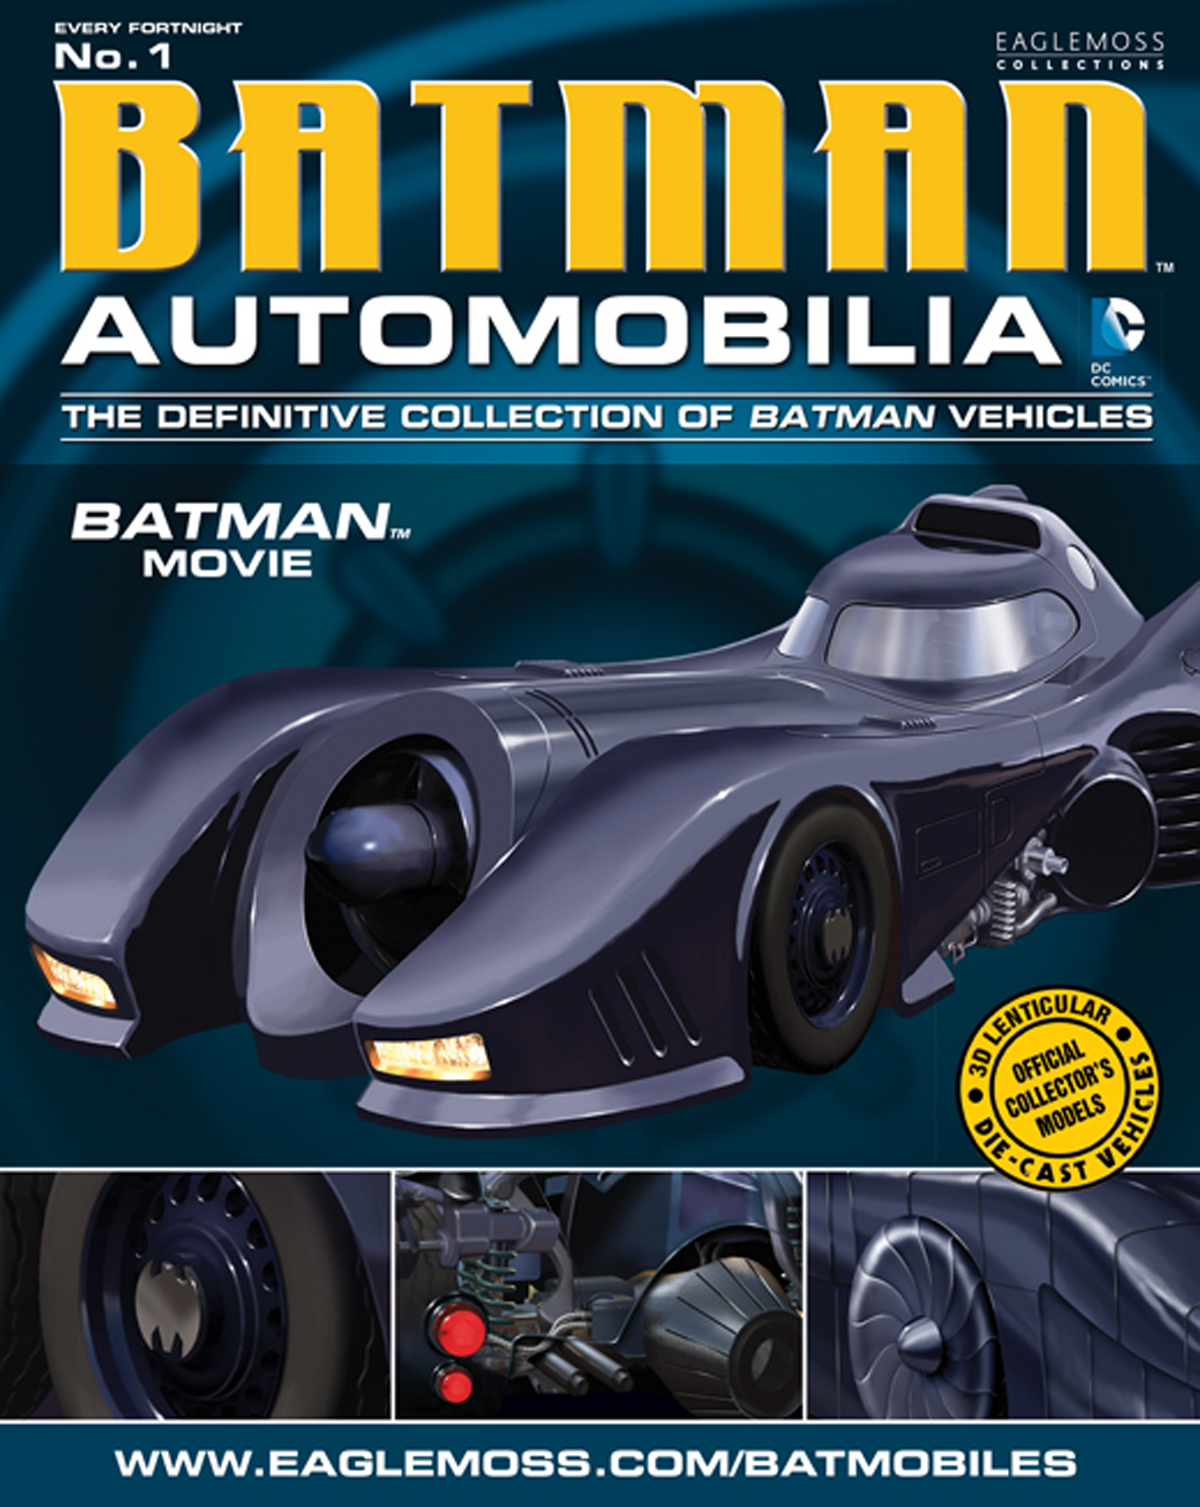 DC BATMAN AUTO FIG MAG #1 1989 BATMAN MOVIE